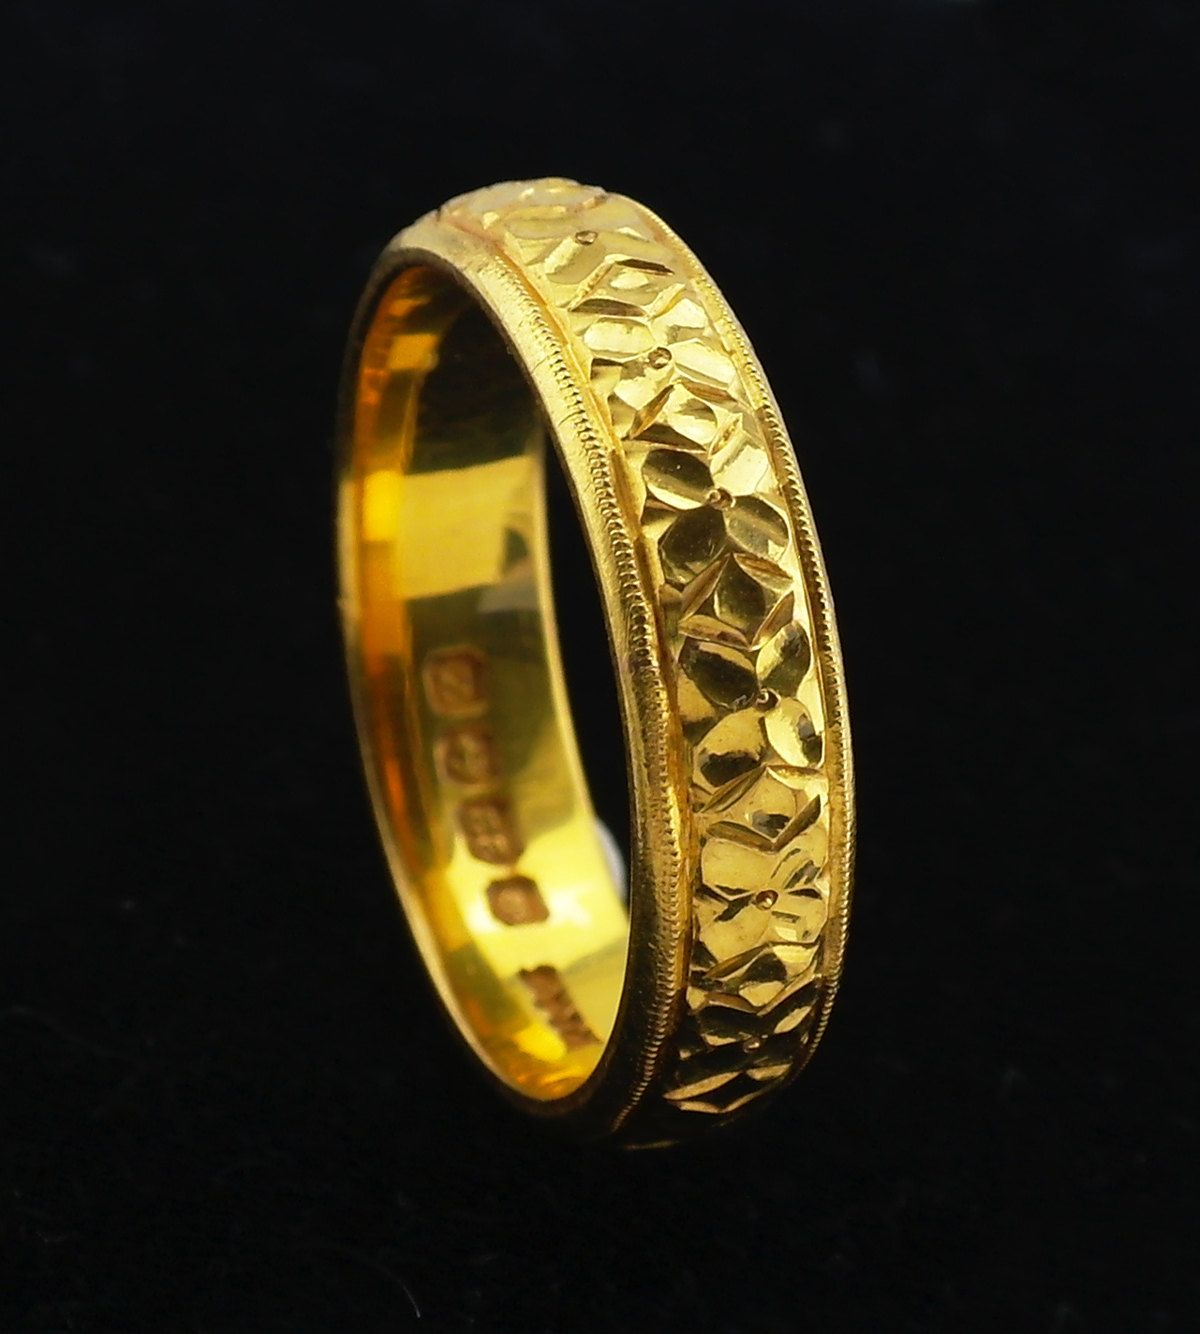 22k Gold Wedding Band Ring Size Us 7 75 Uk P Vintage 1924 J664 Gift